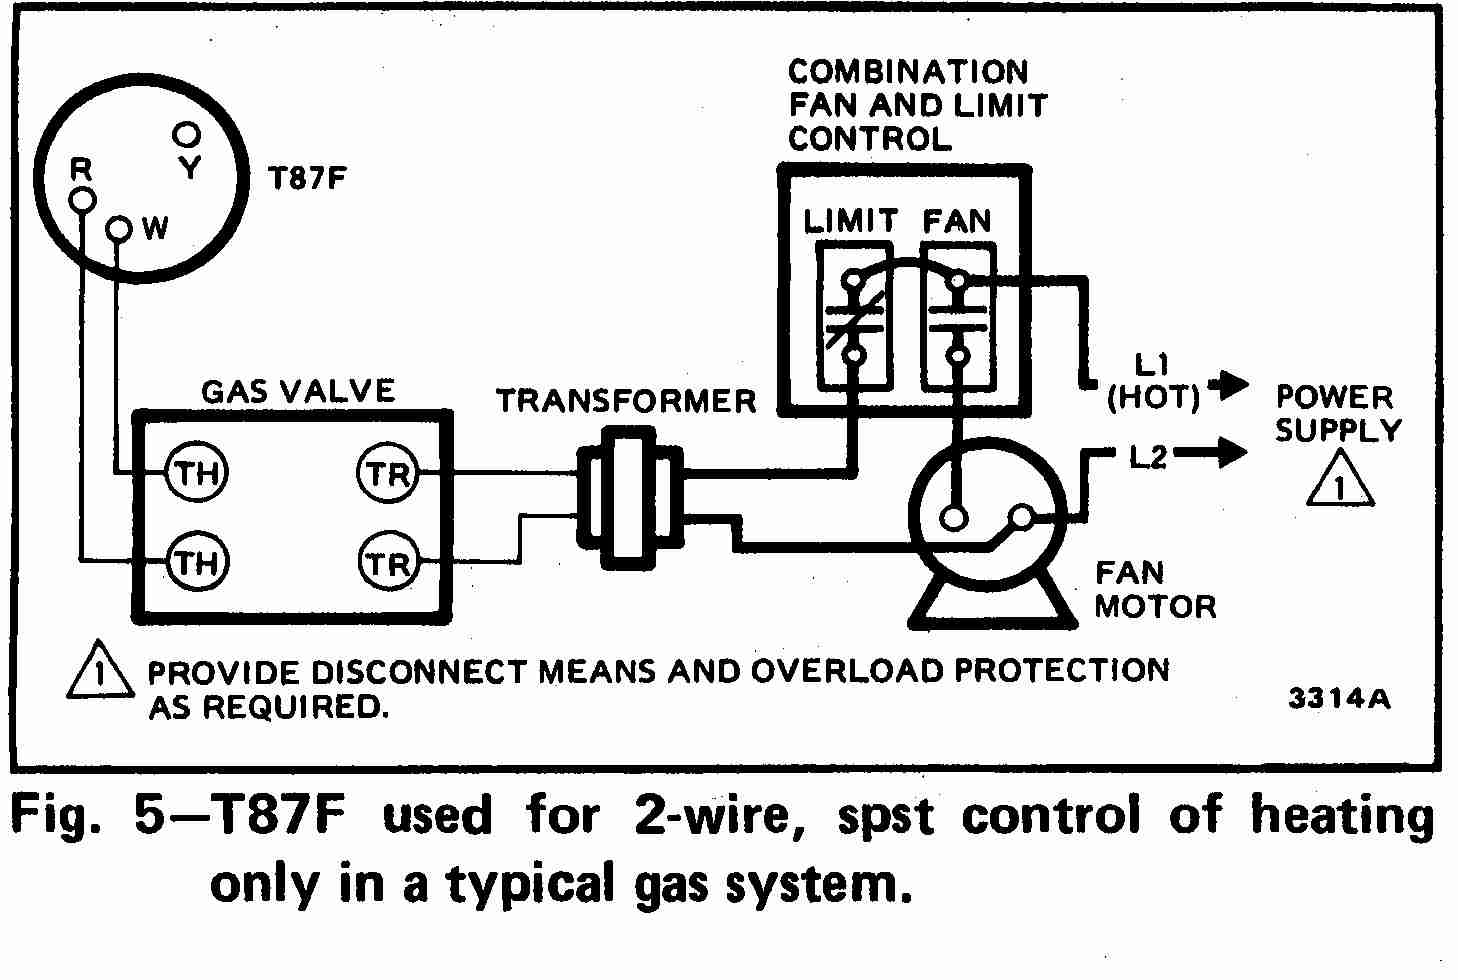 Zone Valve Wiring Installation Instructions Guide To Heating Emerson Ac Motor Diagram Repalcement Parts And Flair 2 Wire Thermosat